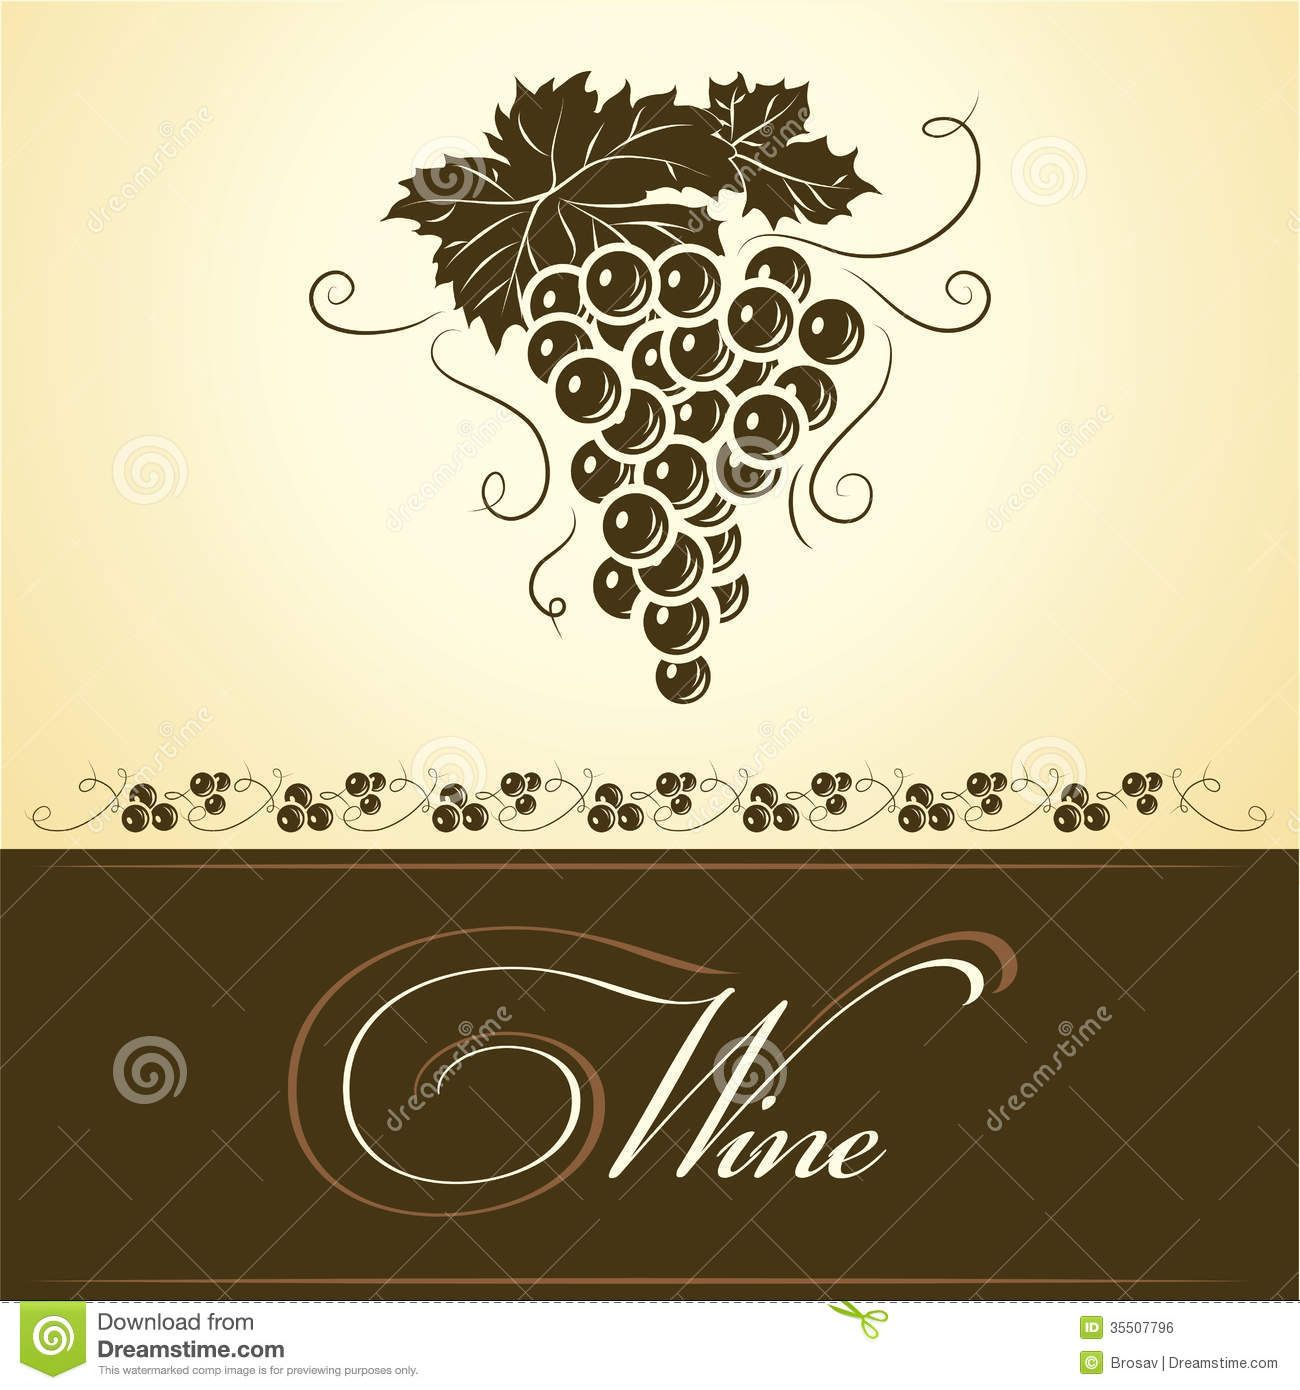 wine label template free - Tire.driveeasy.co